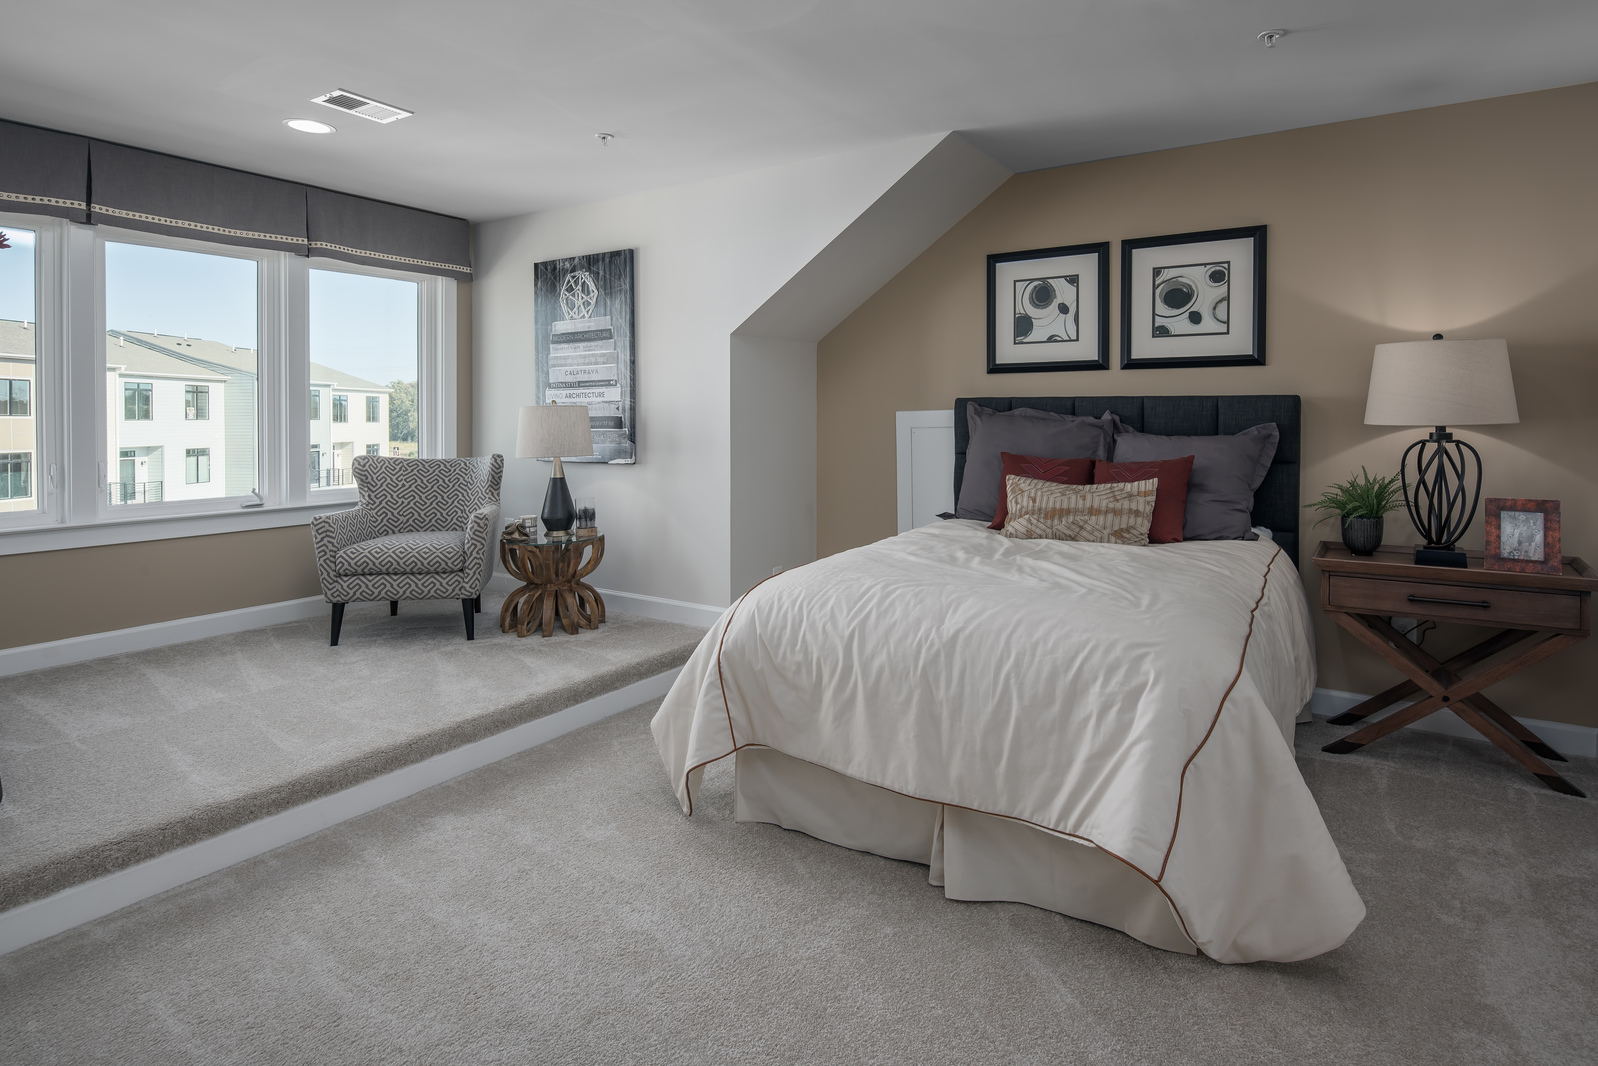 Our fourth level option gives you the flexibility for additional entertaining space and guest bedroom.